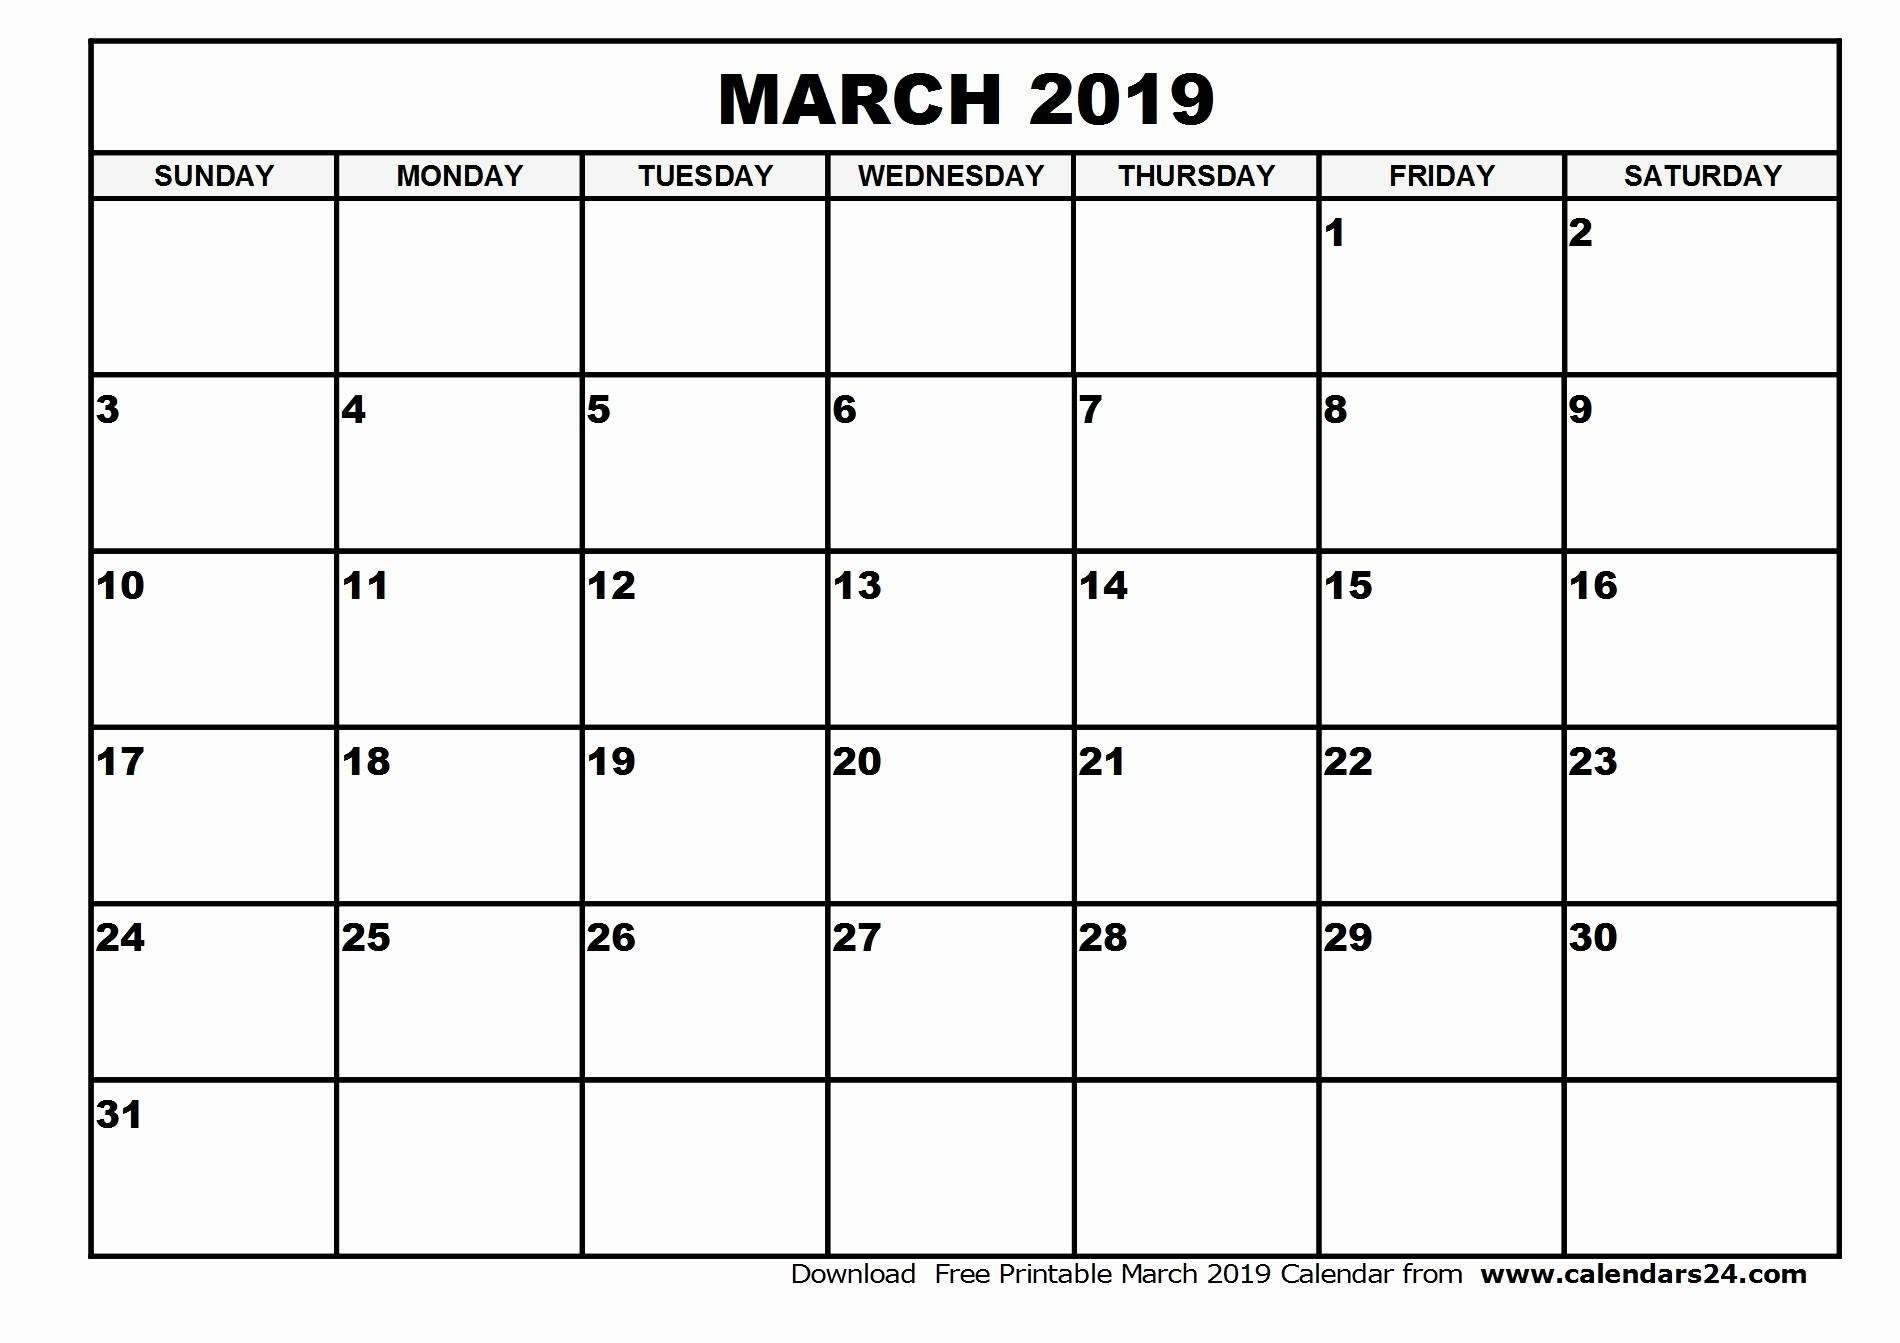 Blank March 2019 Calendar Templates Printable Download - July 2019 with Printable Editable Monthly Calendar Template